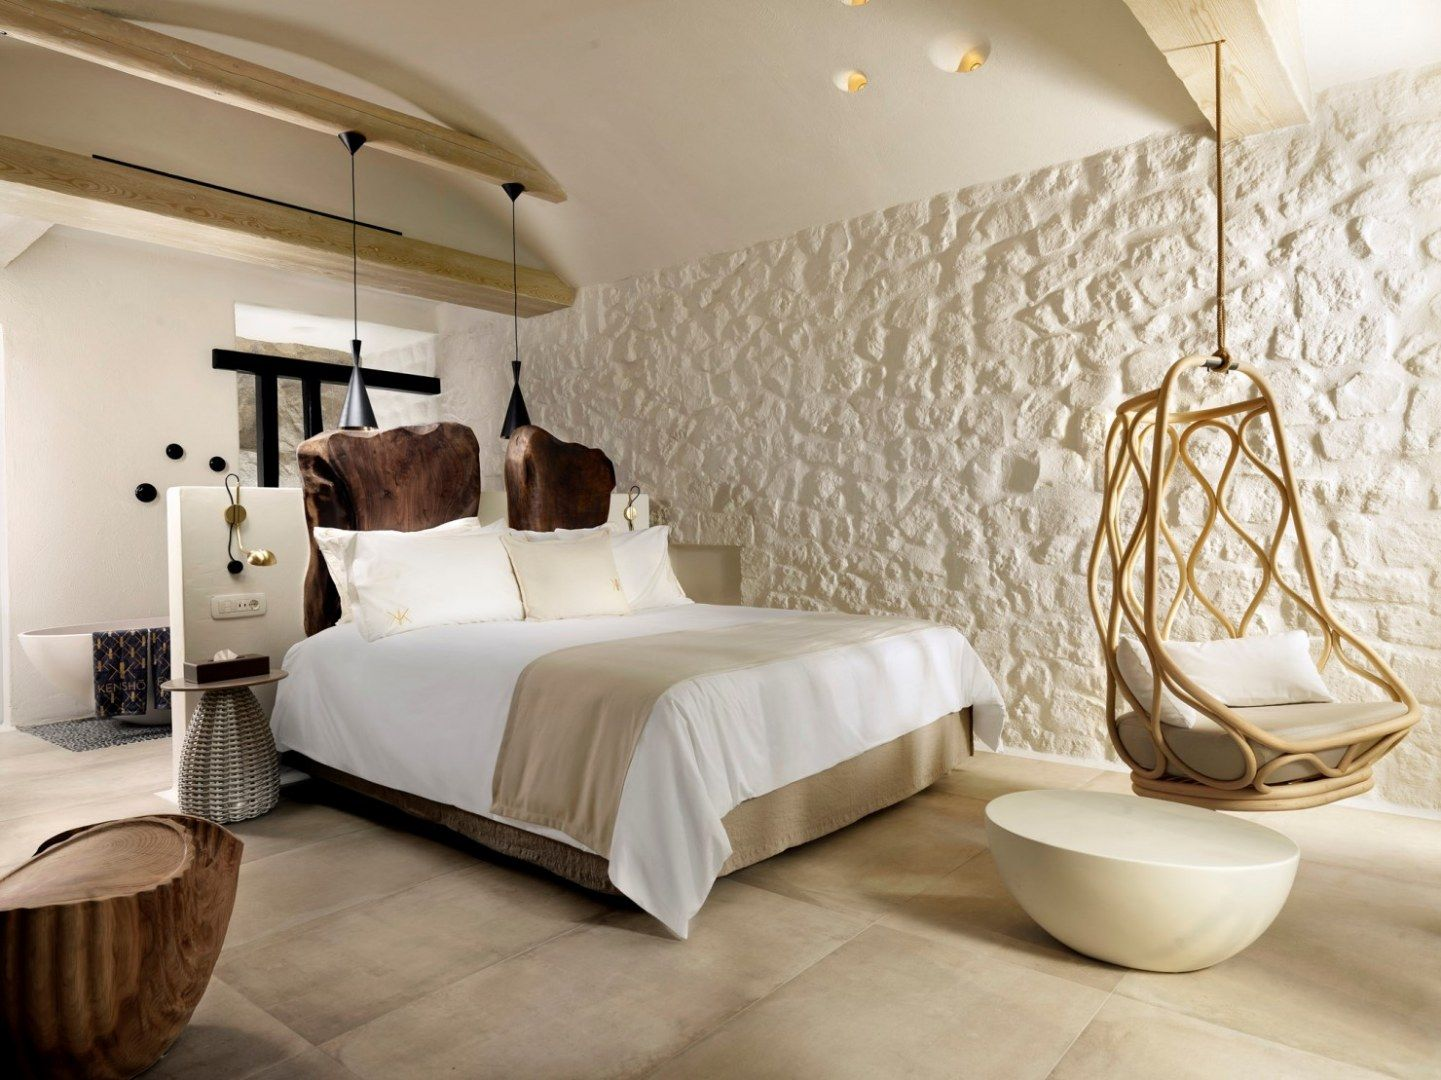 Cocoon boutique hotel inspiration interior for Interior design inspiration